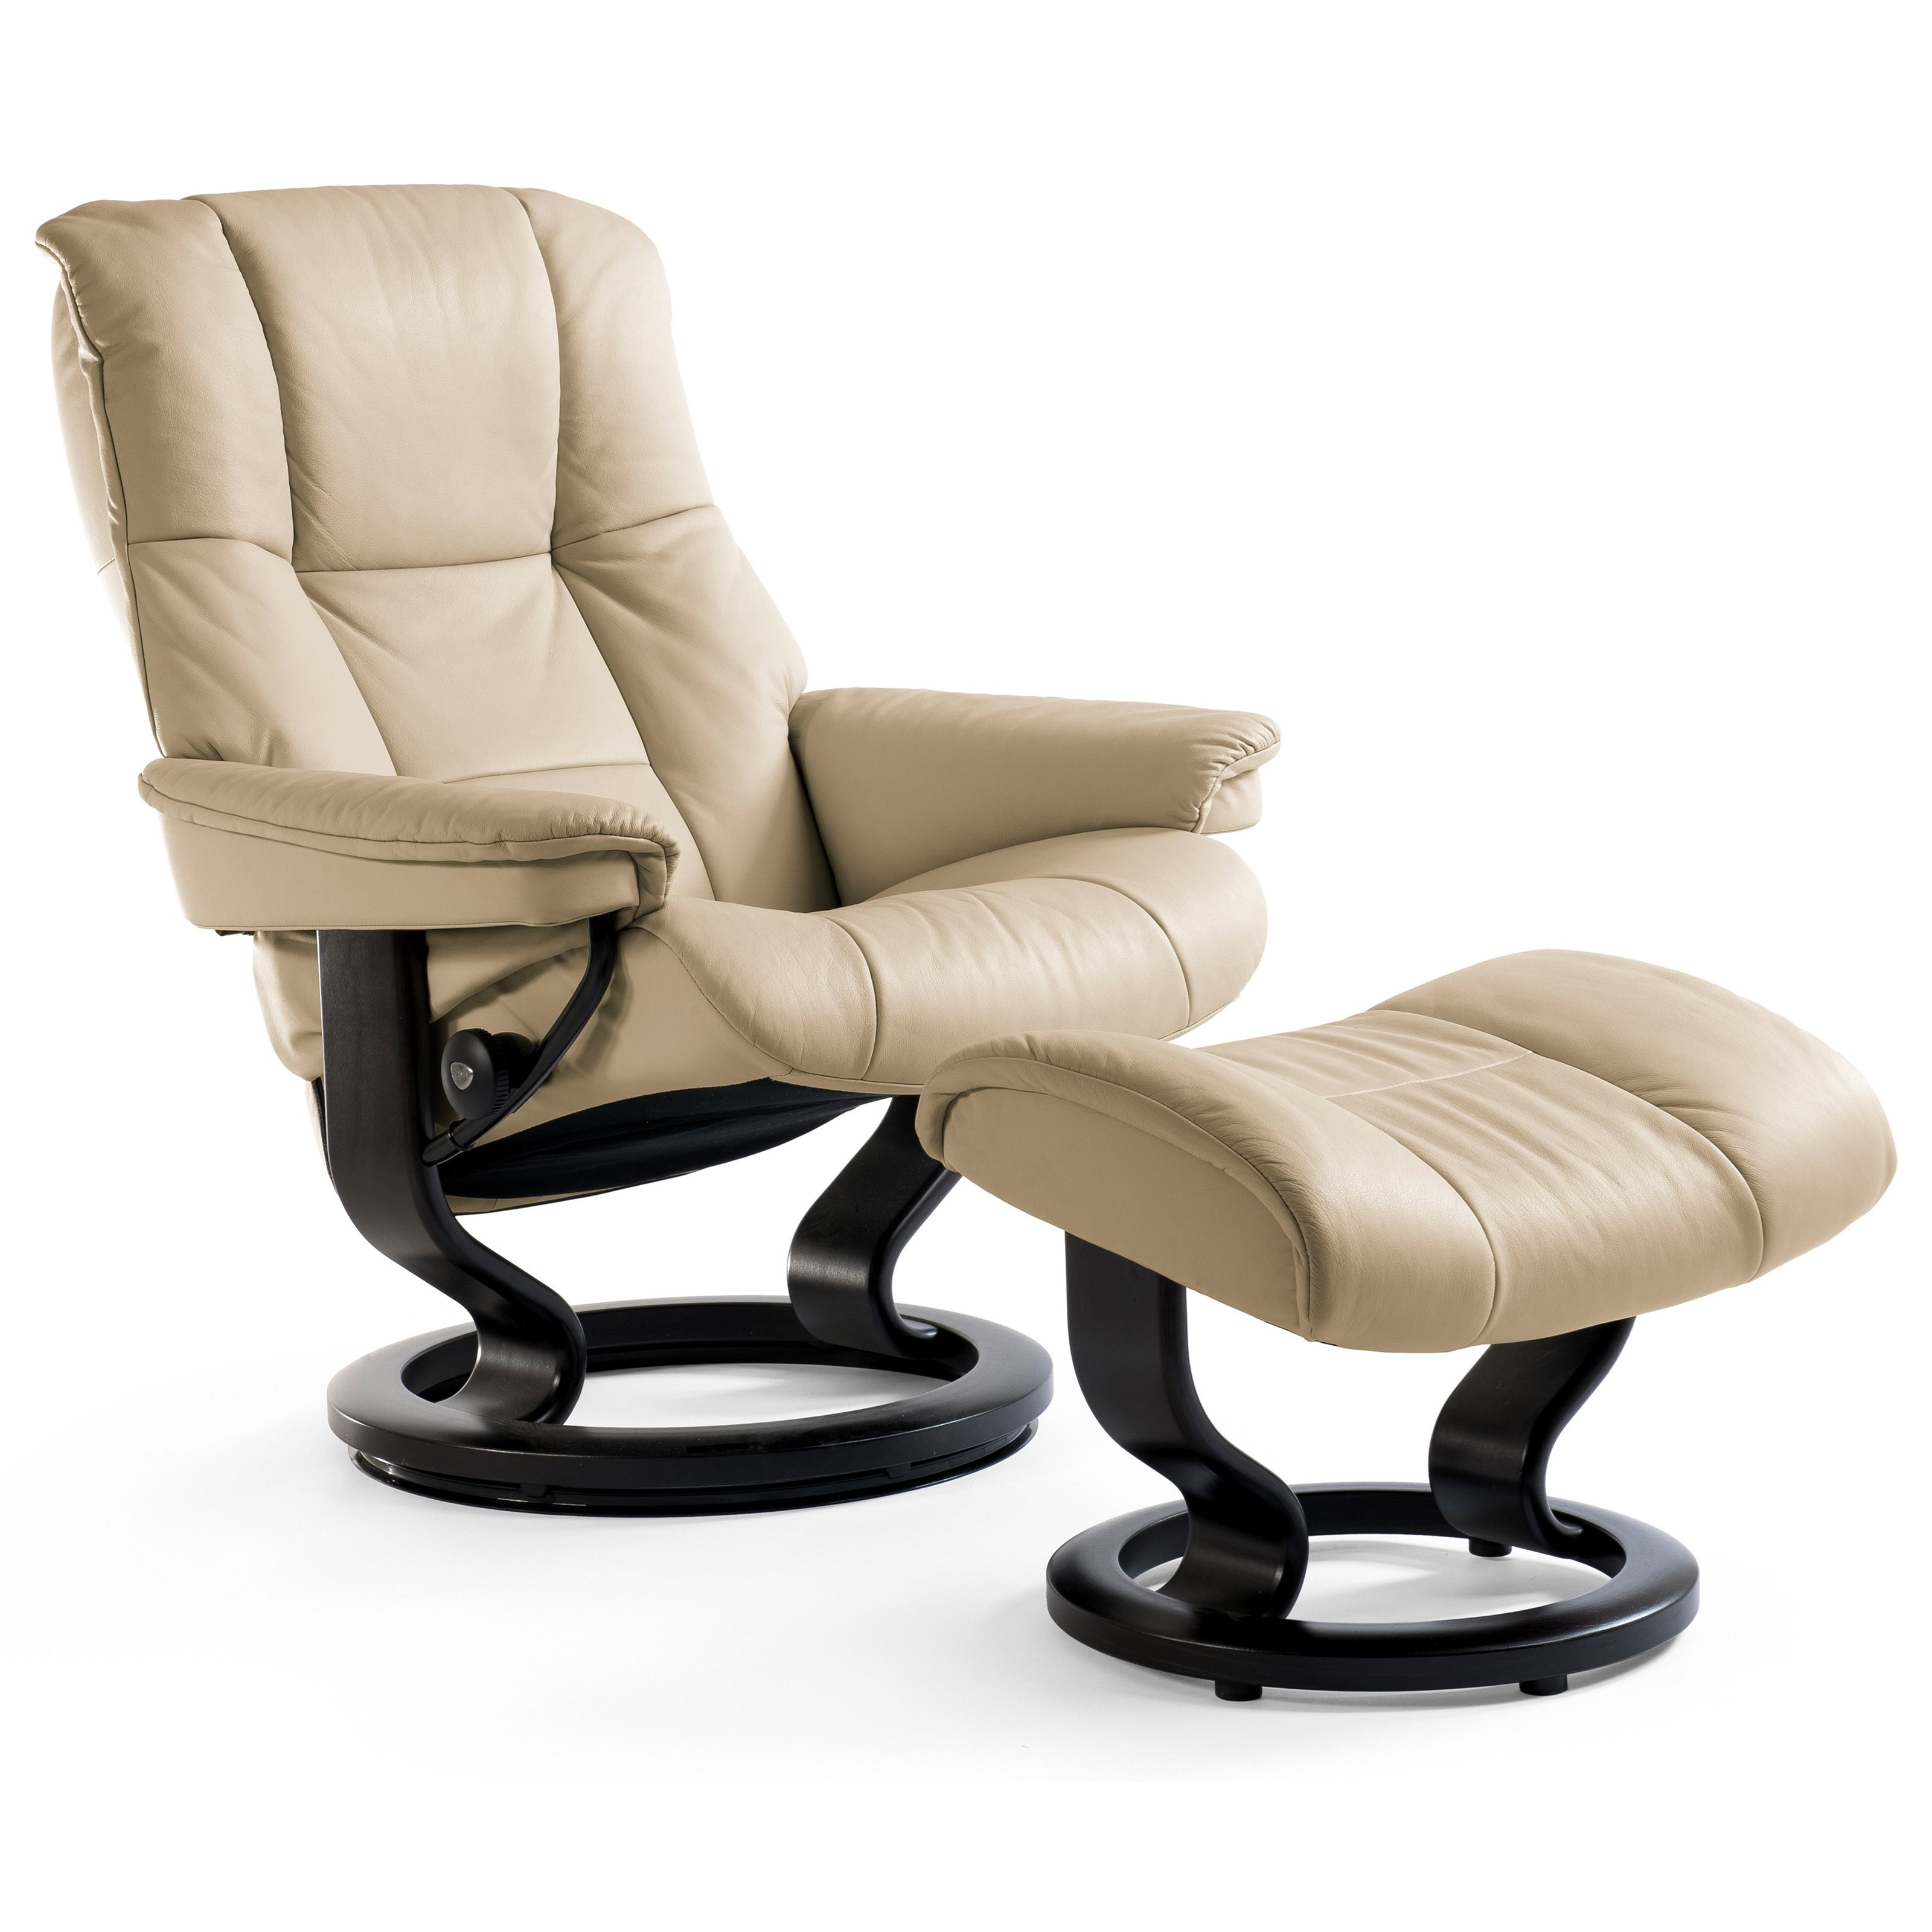 Small Chair With Ottoman: Stressless Mayfair 1059015 Small Reclining Chair & Ottoman